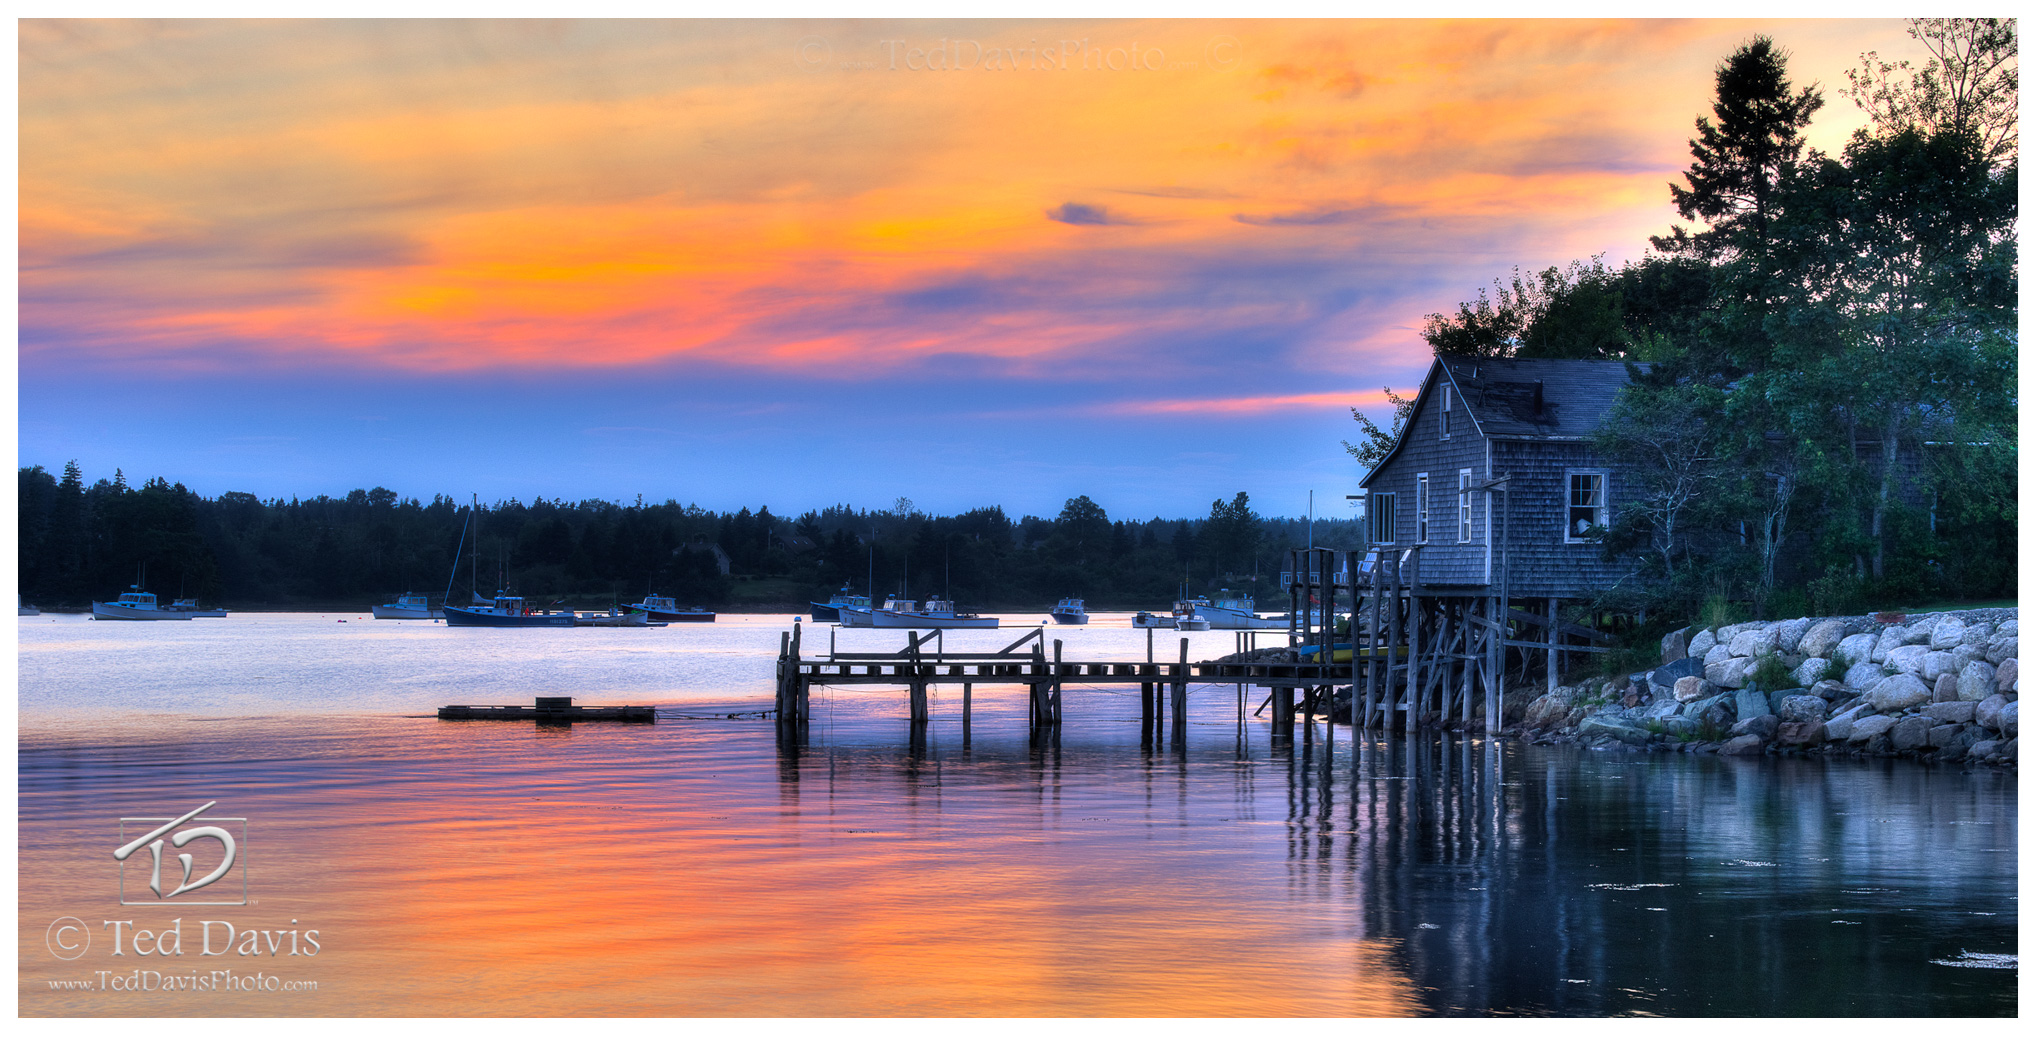 sunset, new england, harbor, coastal, lake, river, pond, ocean, serenity, pier, photo